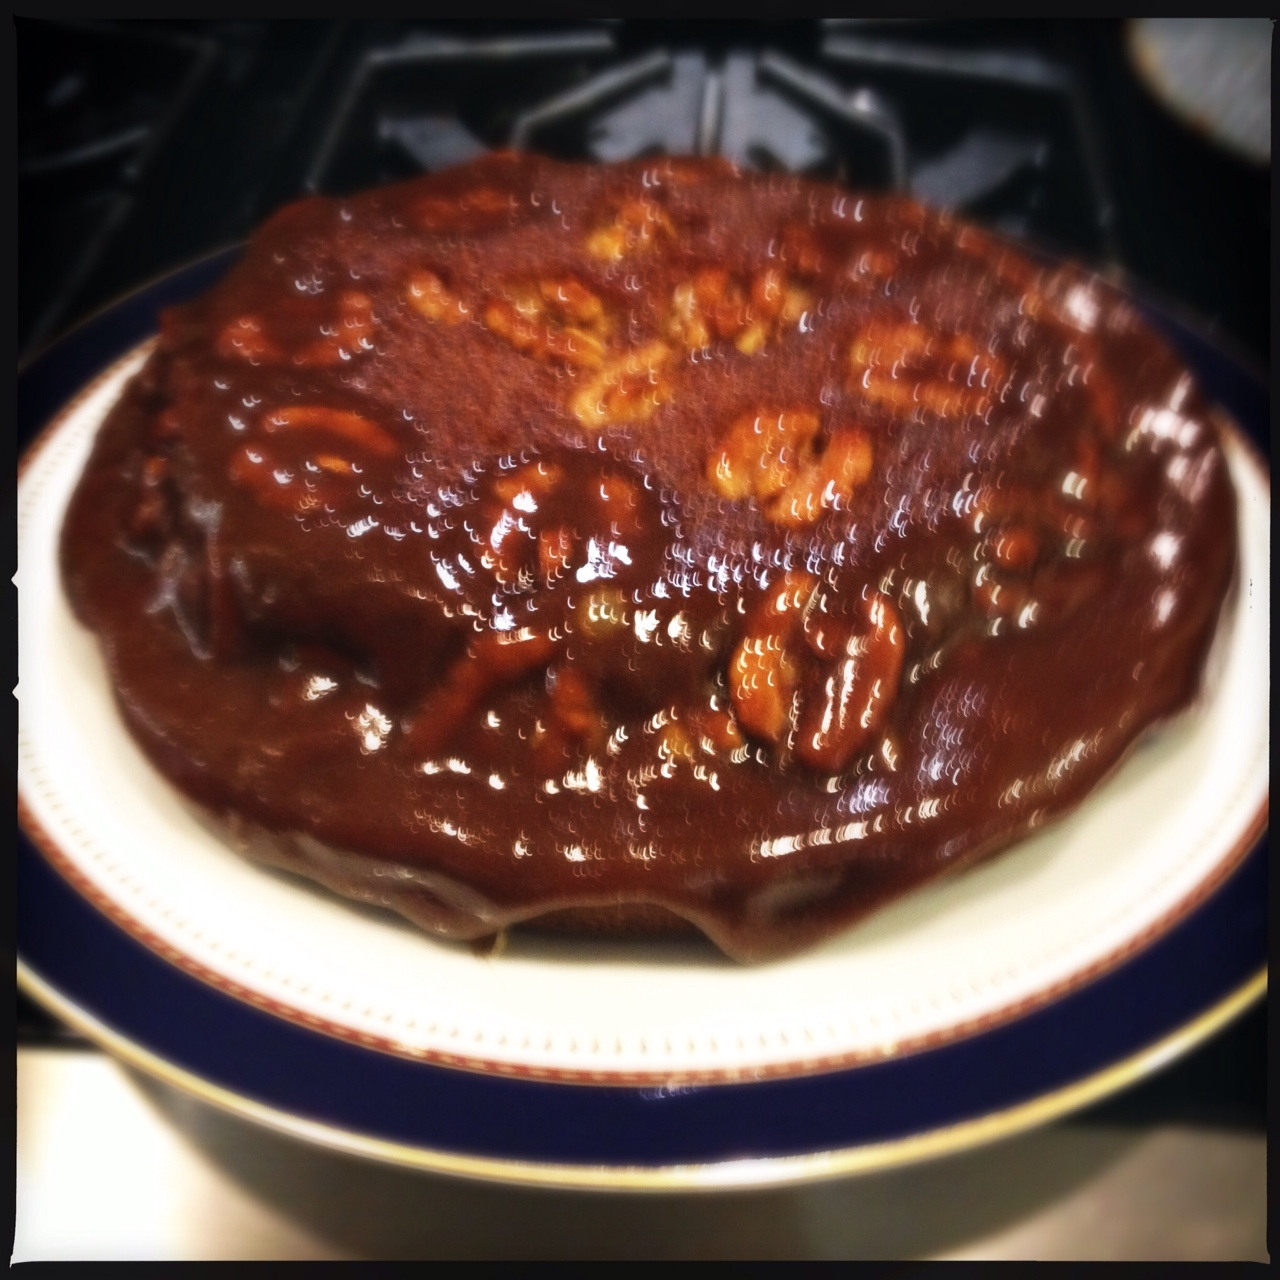 ... : January Jeliciousness: Caramel Walnut Upside-Down Banana Cake